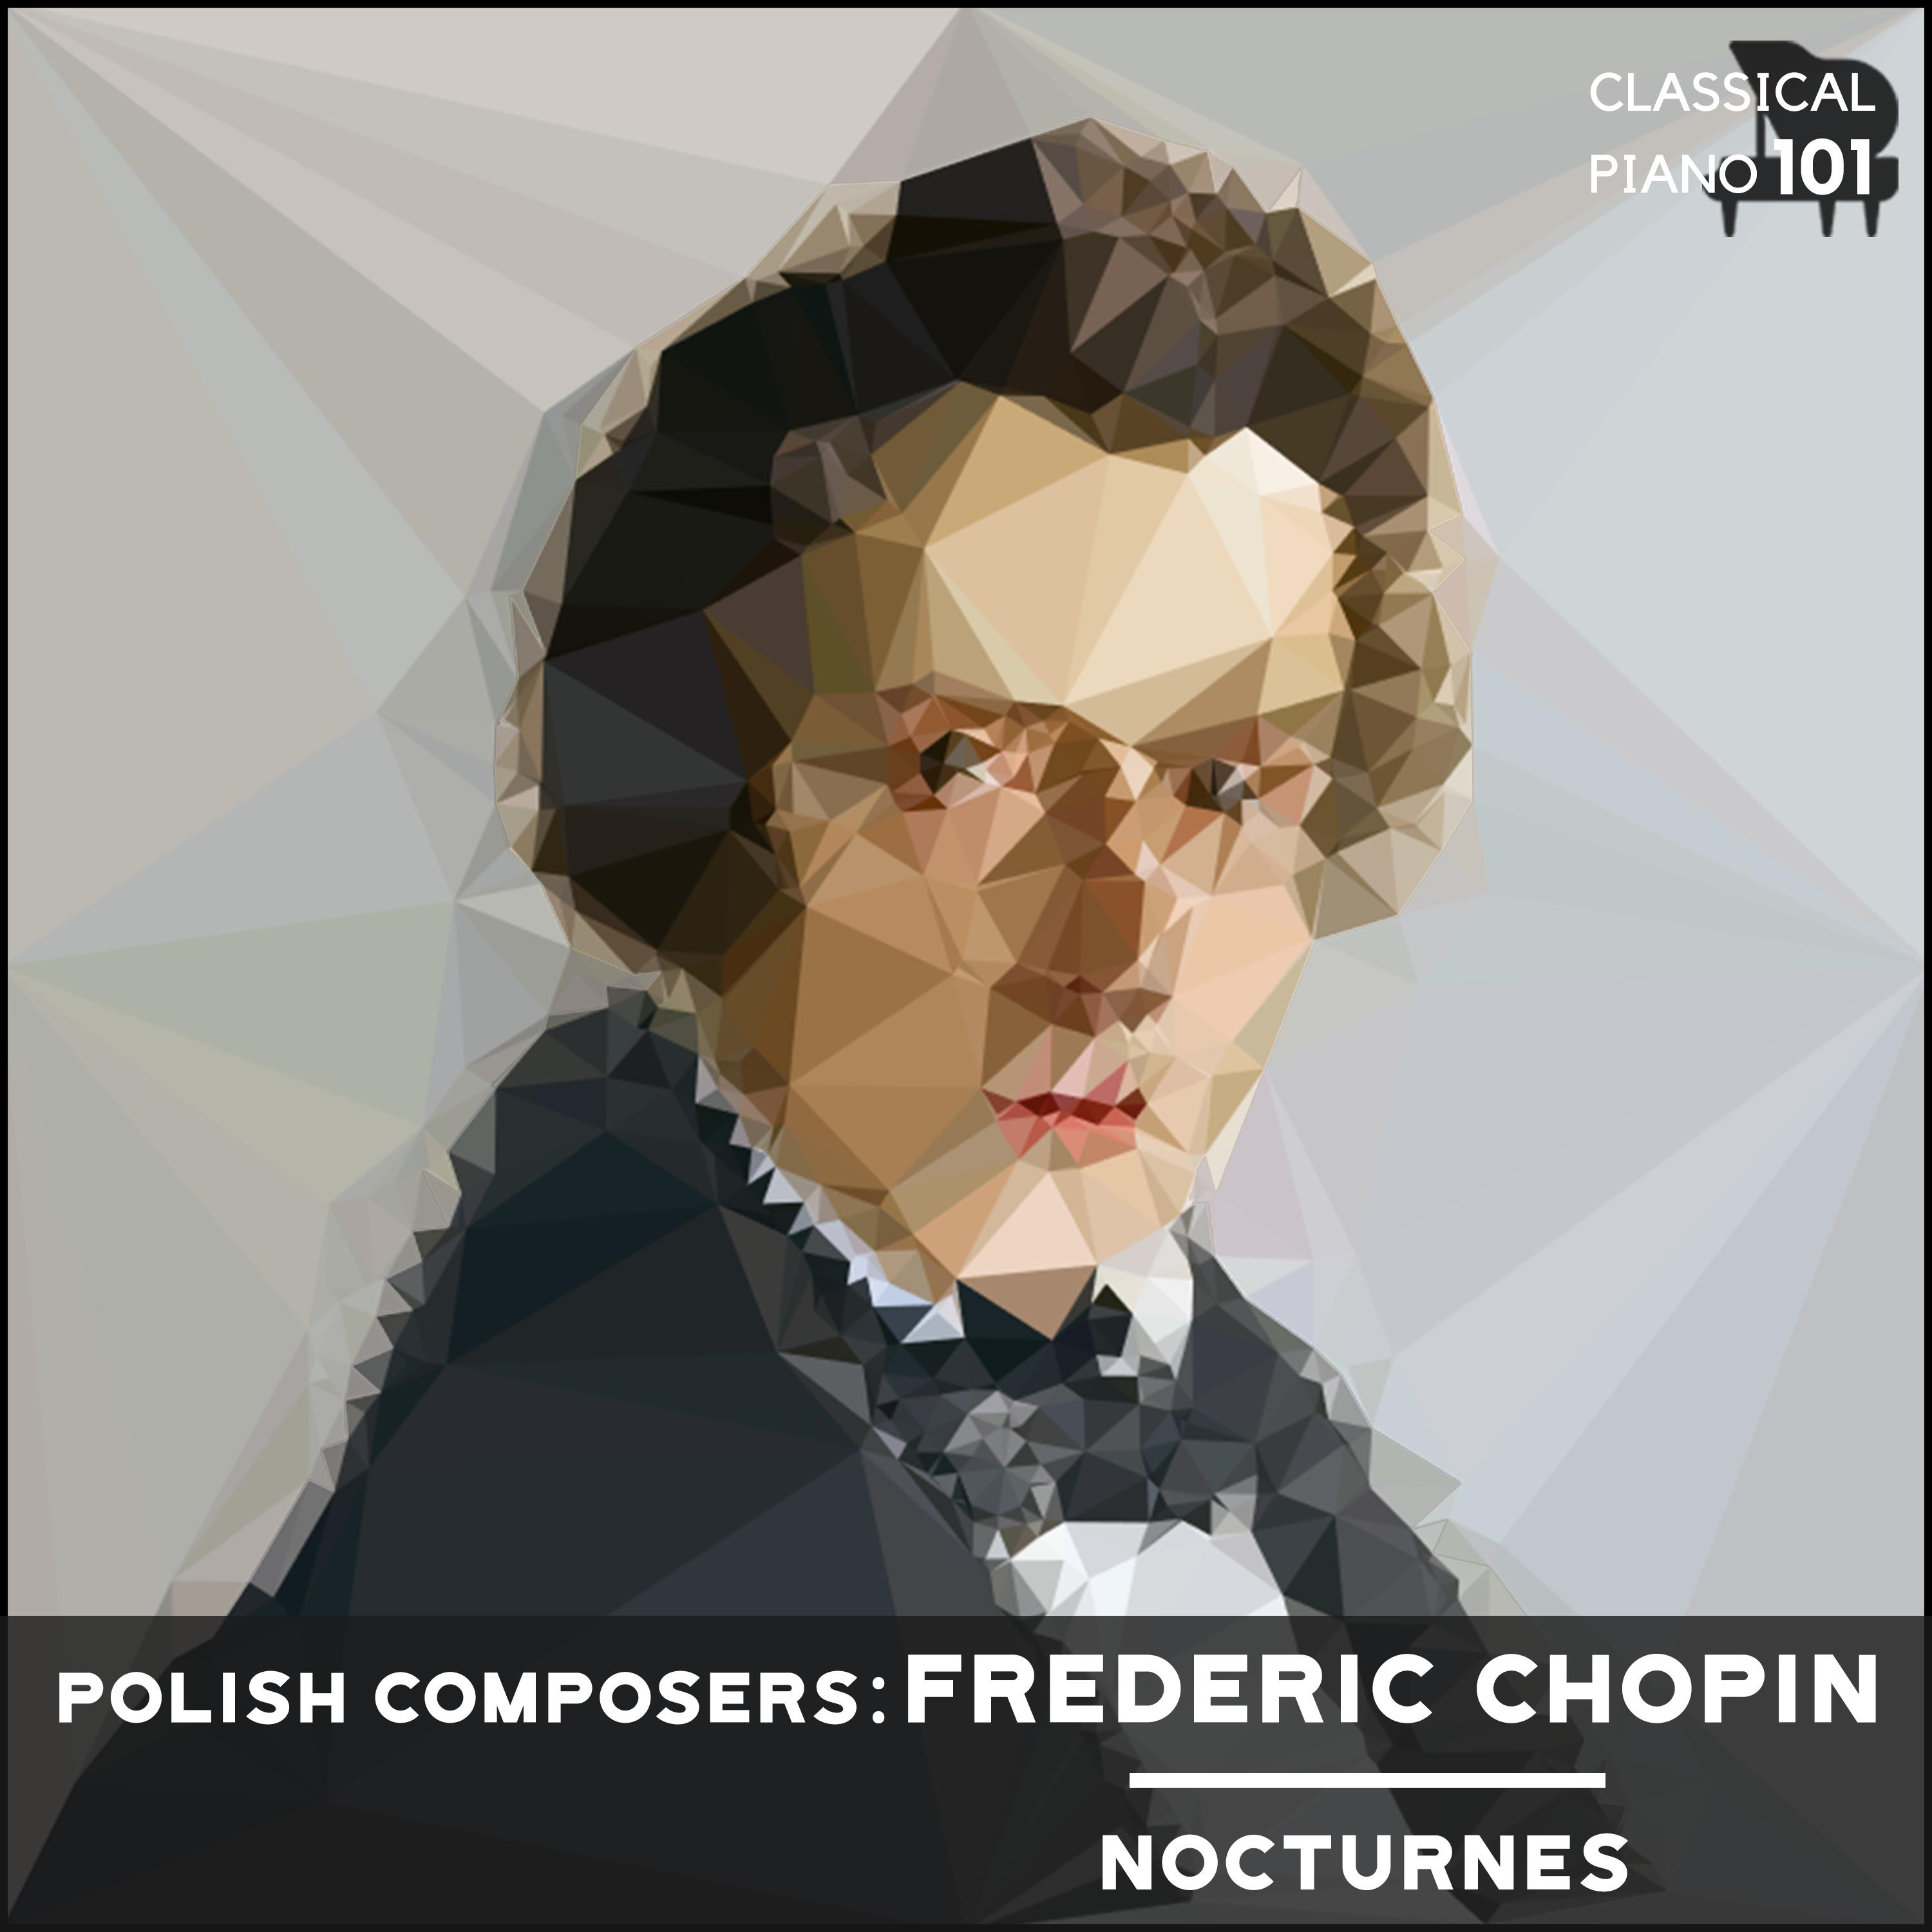 Polish Composers: Frederic Chopin Nocturnes